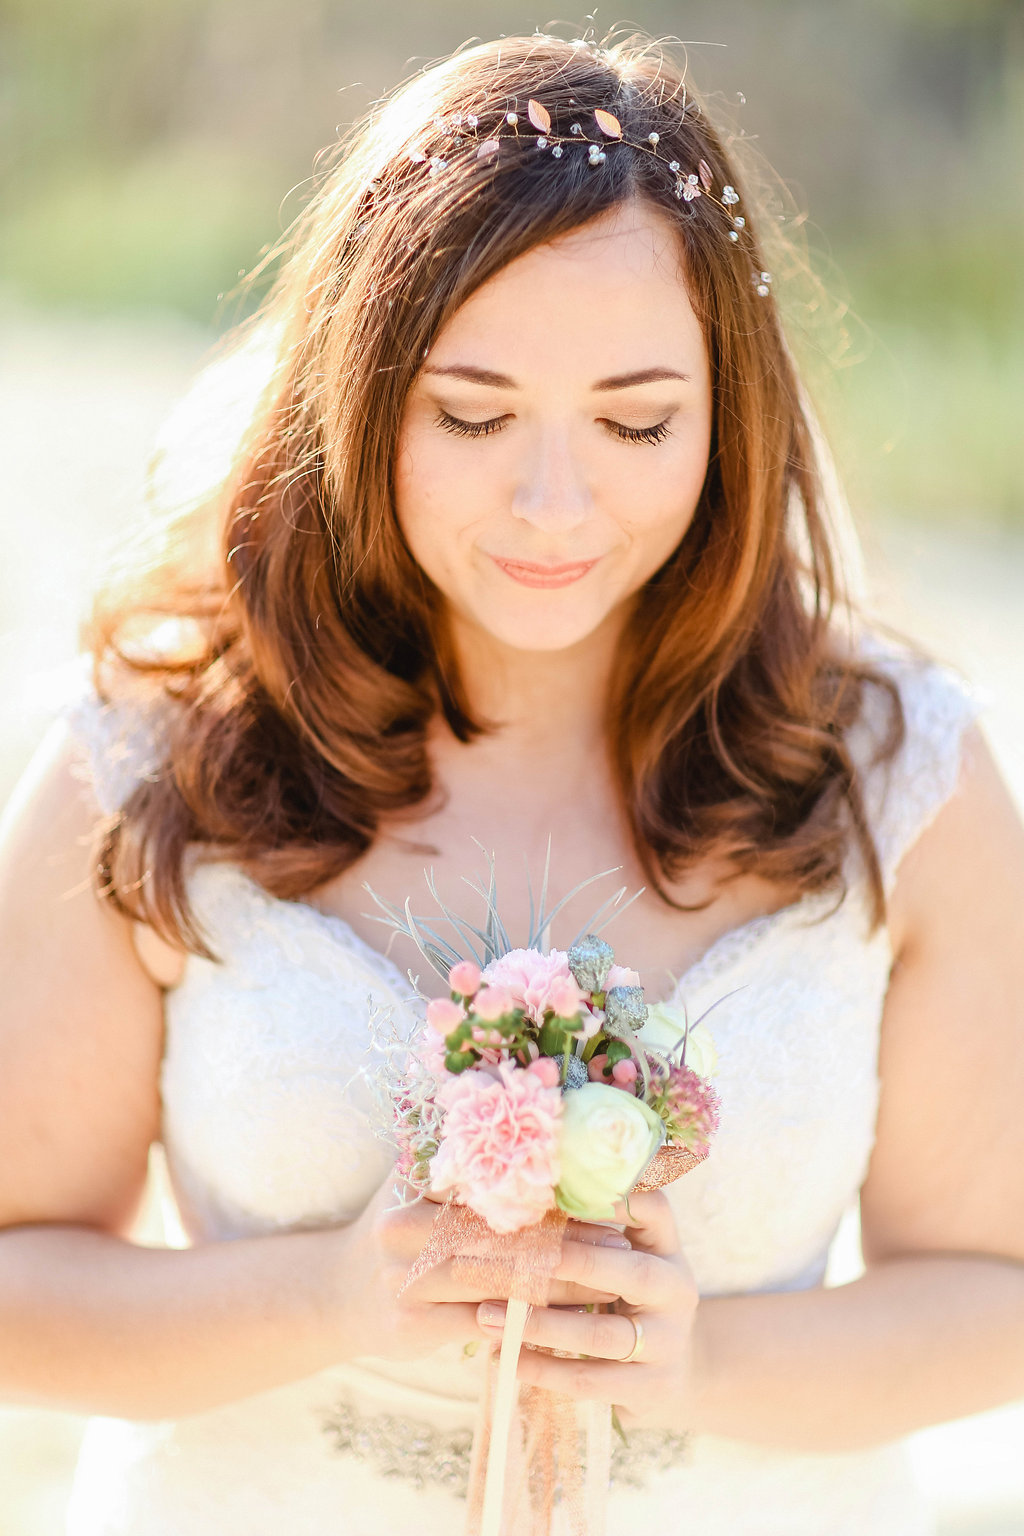 View More: http://claudiaebelingphotography.pass.us/annairiswedding